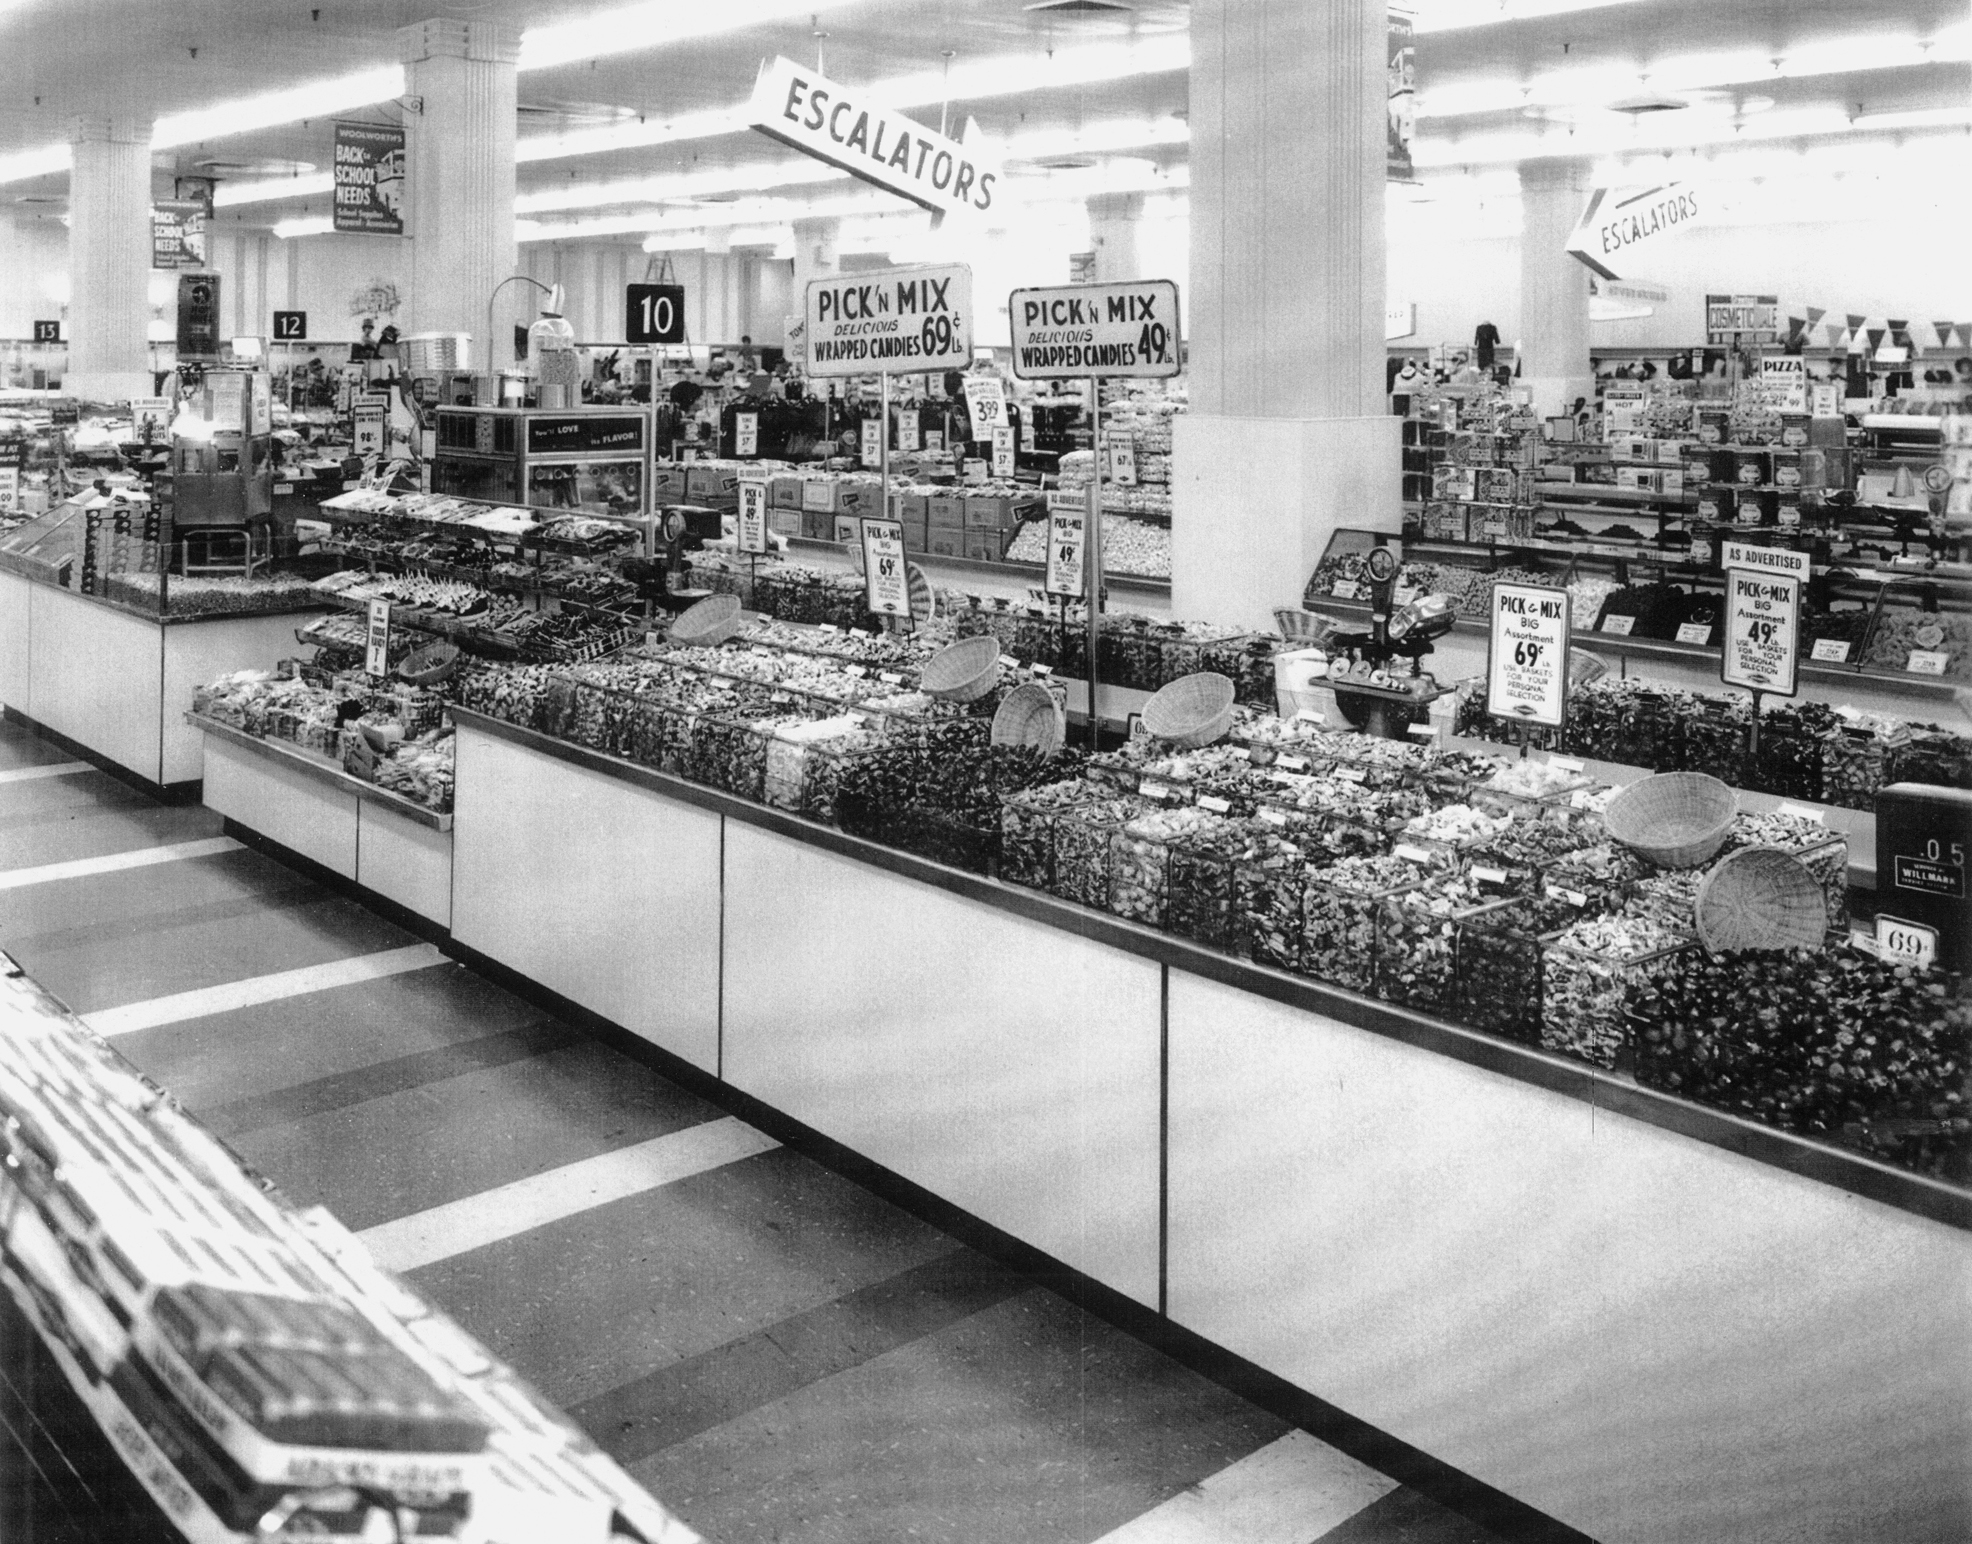 The F W Woolworth Co Picked Up The Idea Of Customer Mixed Bulk Candy For Its Chain Of Five And Dime Stores At The Candy Department Of This Woolworth In